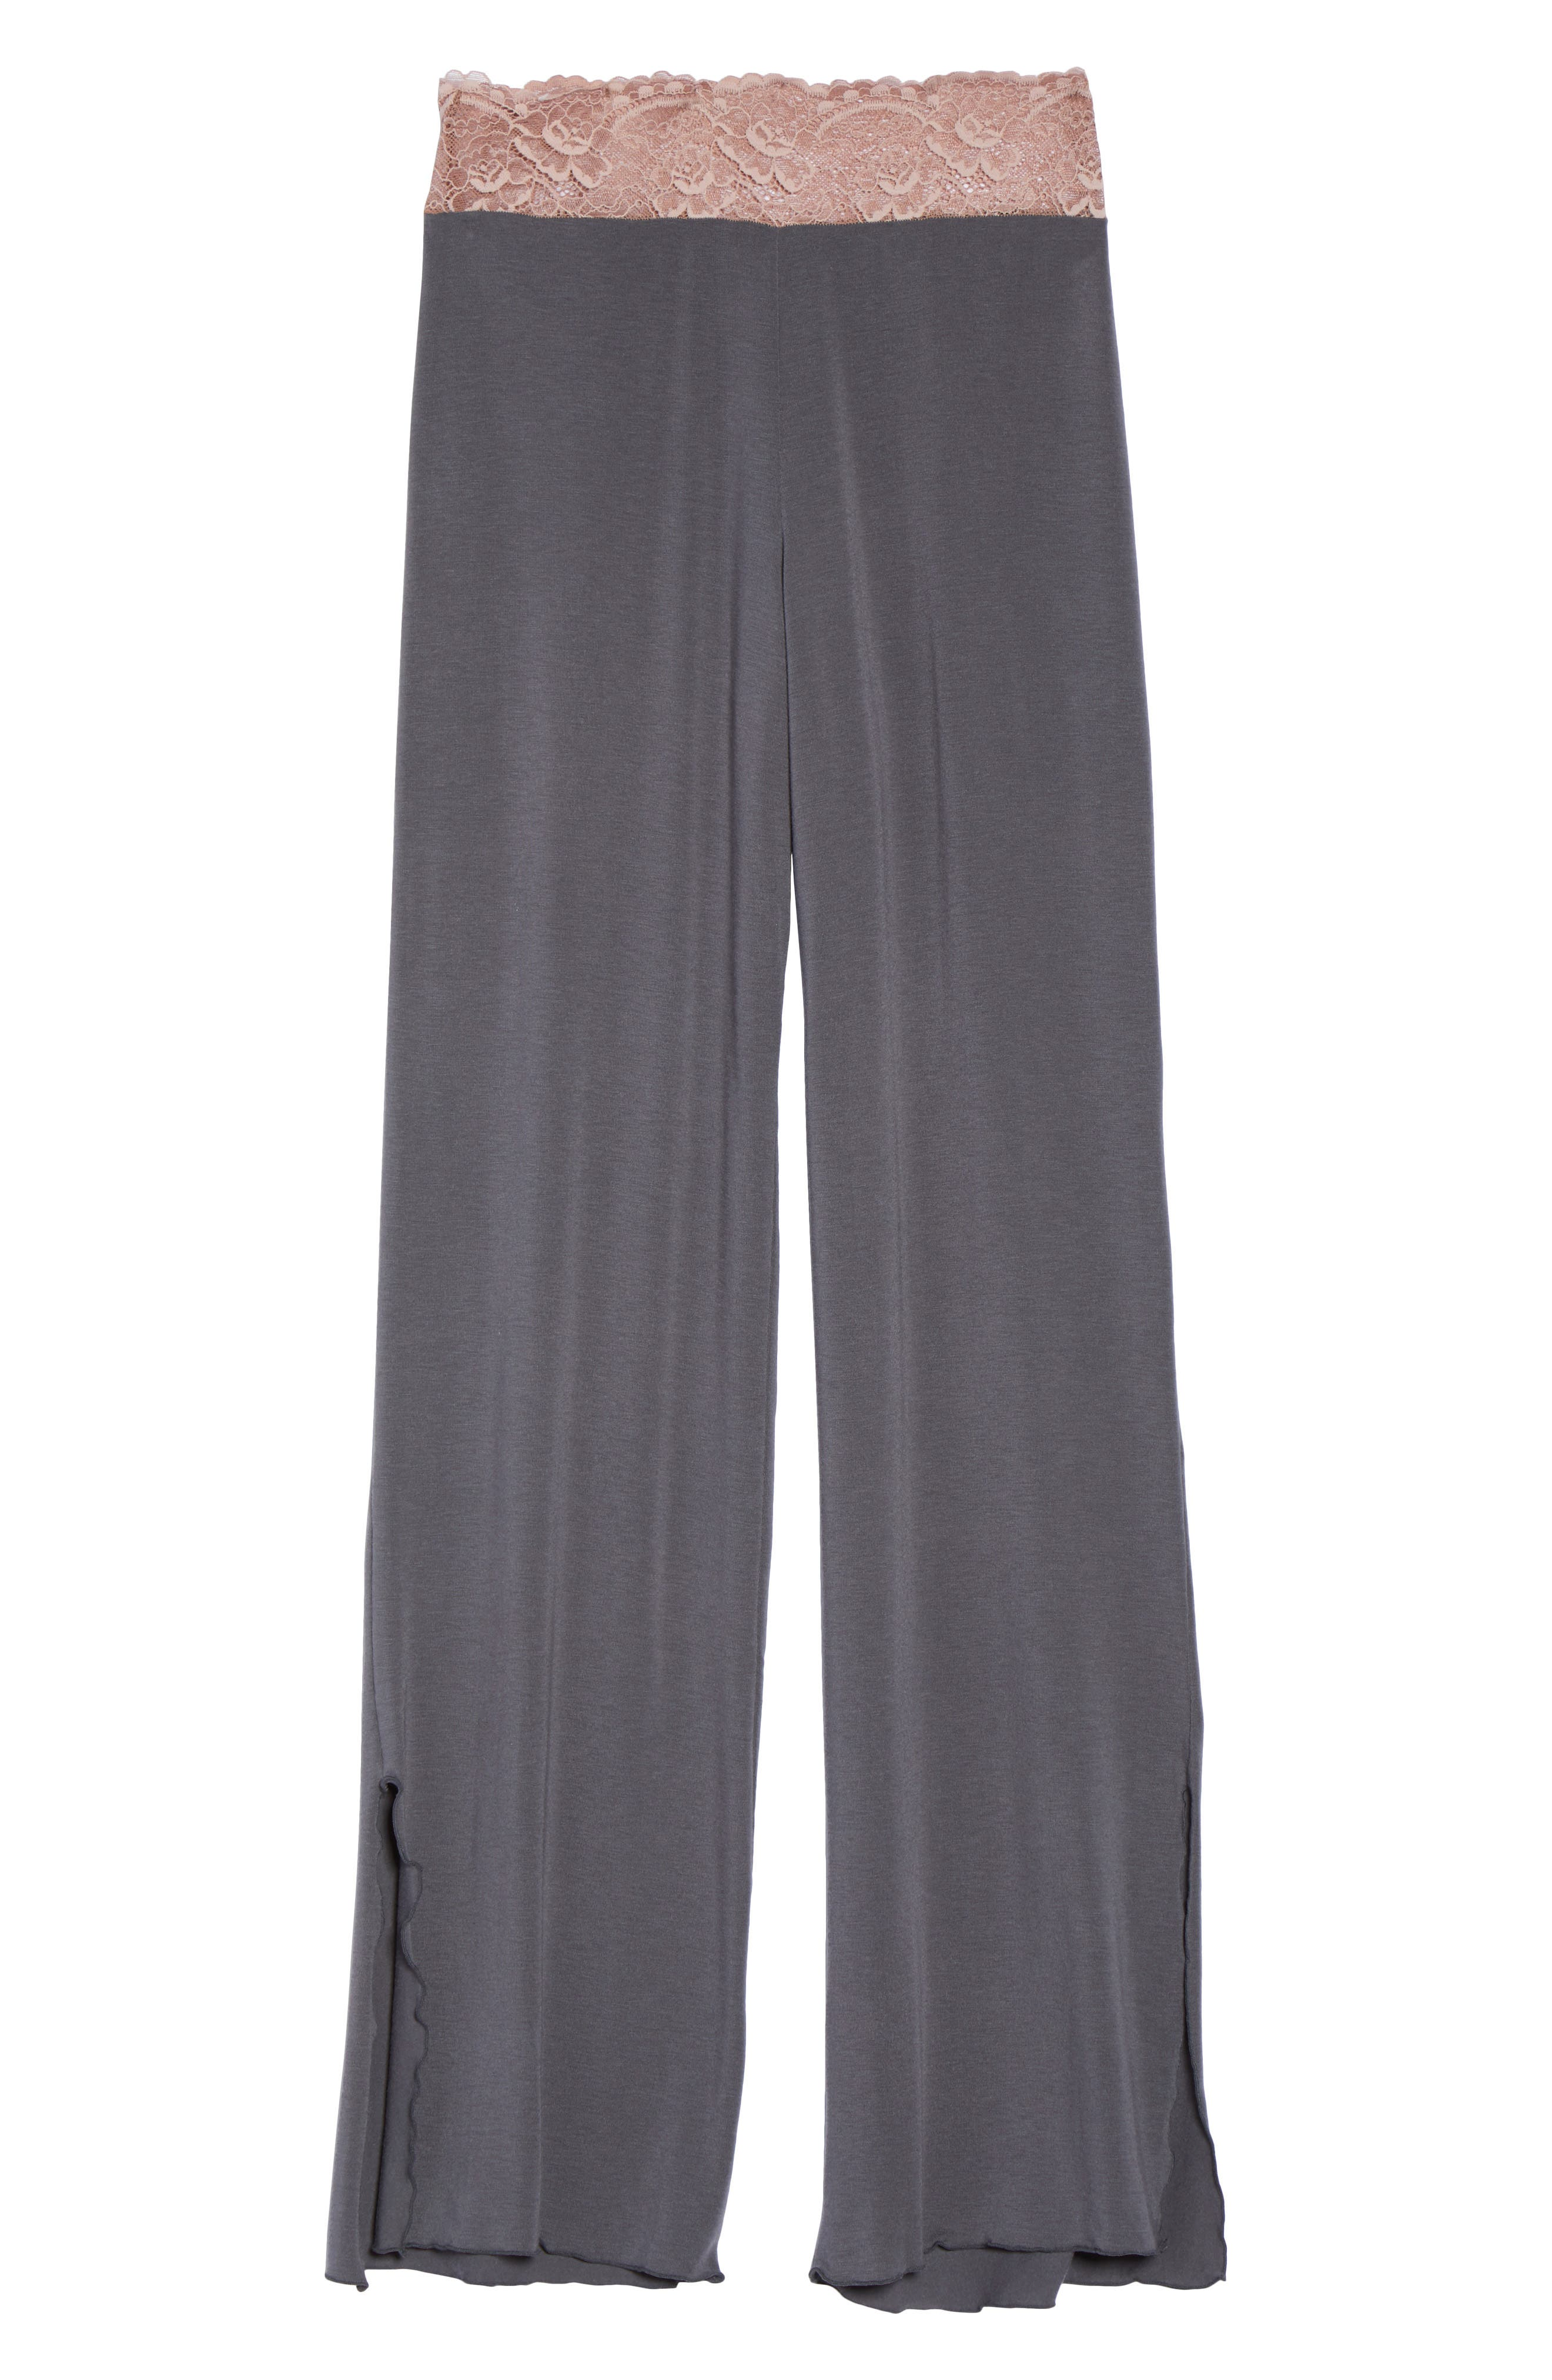 Lace Trim Pants,                             Alternate thumbnail 4, color,                             Slate With Java Lace